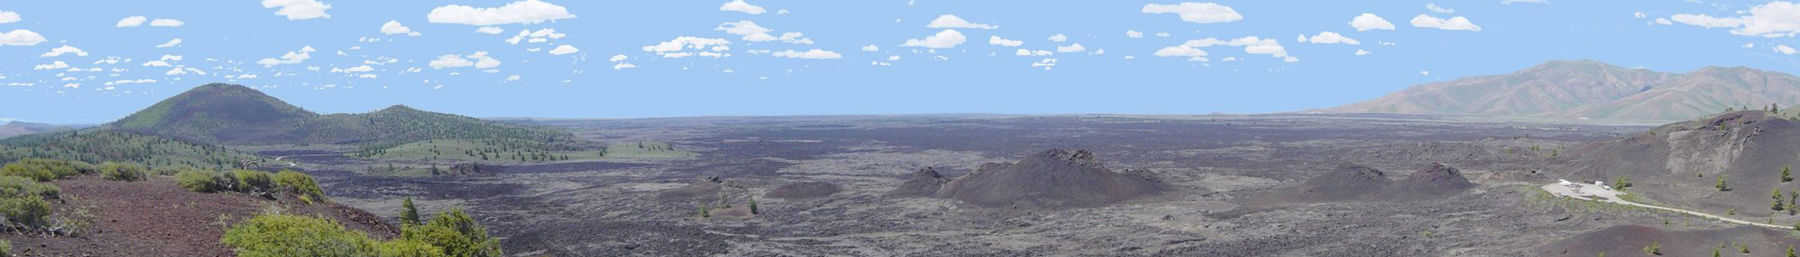 Craters of the Moon National Monument banner.jpg